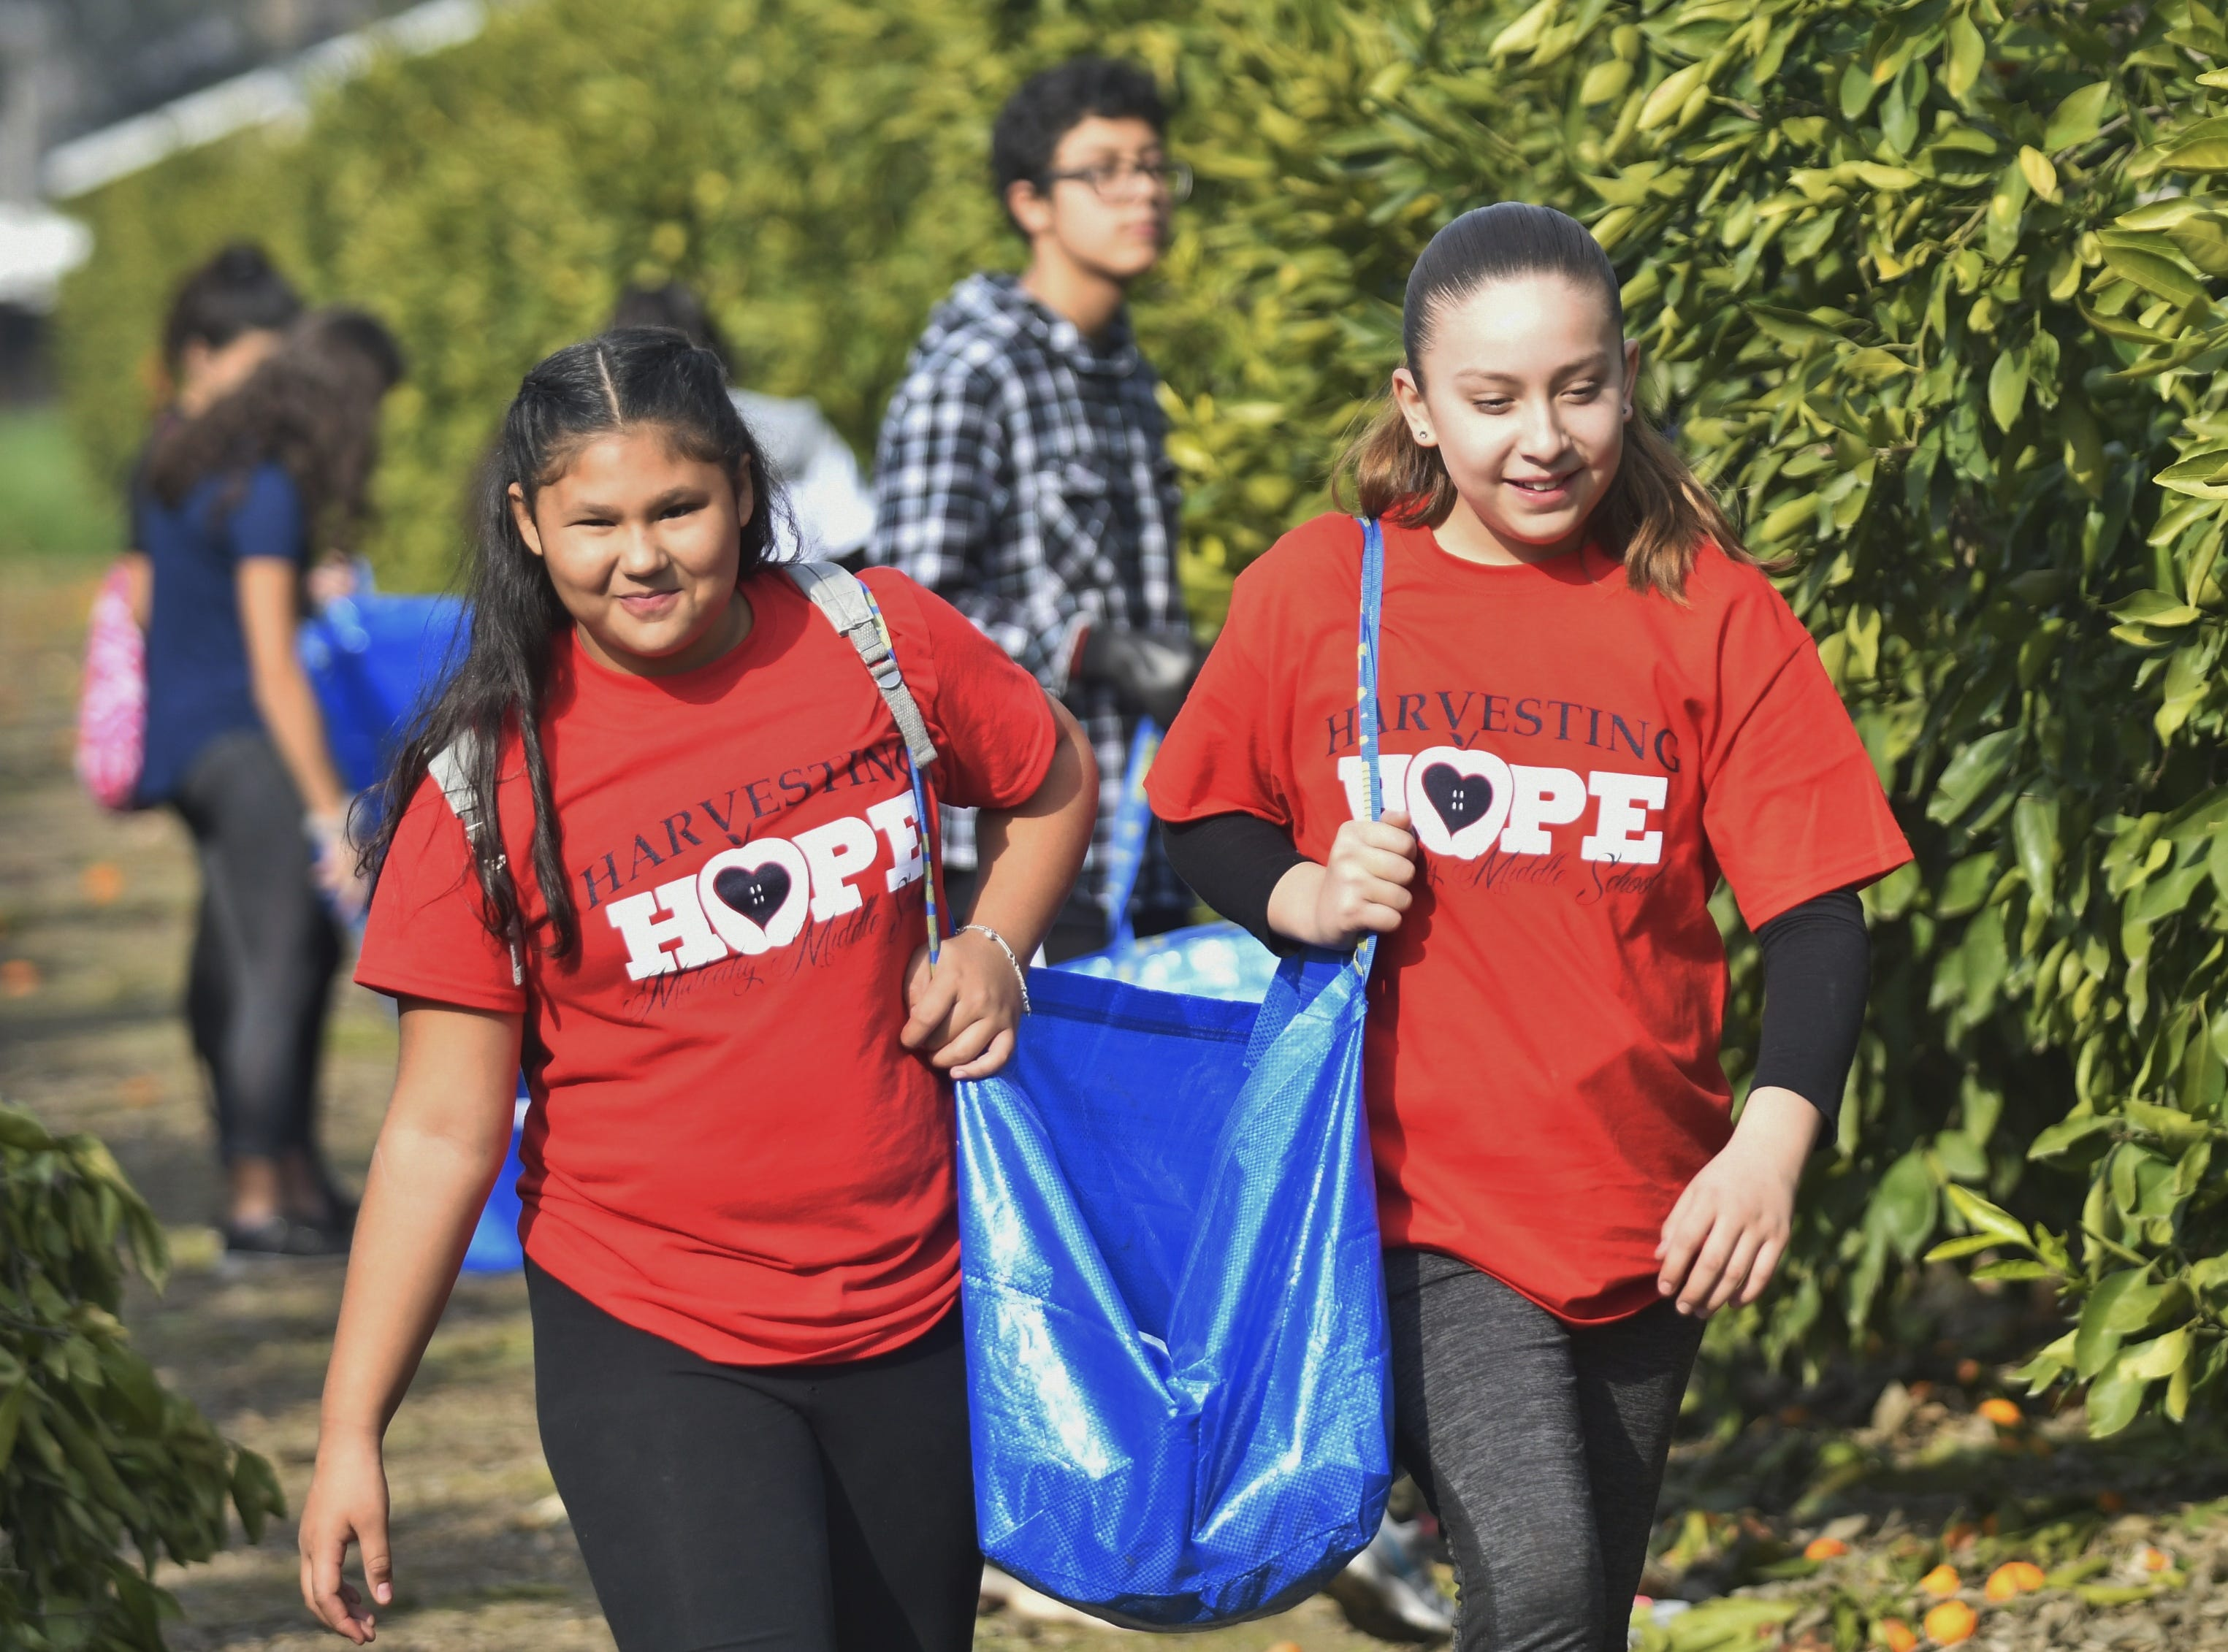 On Saturday, more than 100 Tulare County students and parents picked tangerines from a 5-acregrove in Visalia through Harvesting Hope.  What startedout as a class projectfive years ago has turned into a county-wide program involving students from more than a dozenschools and community members.